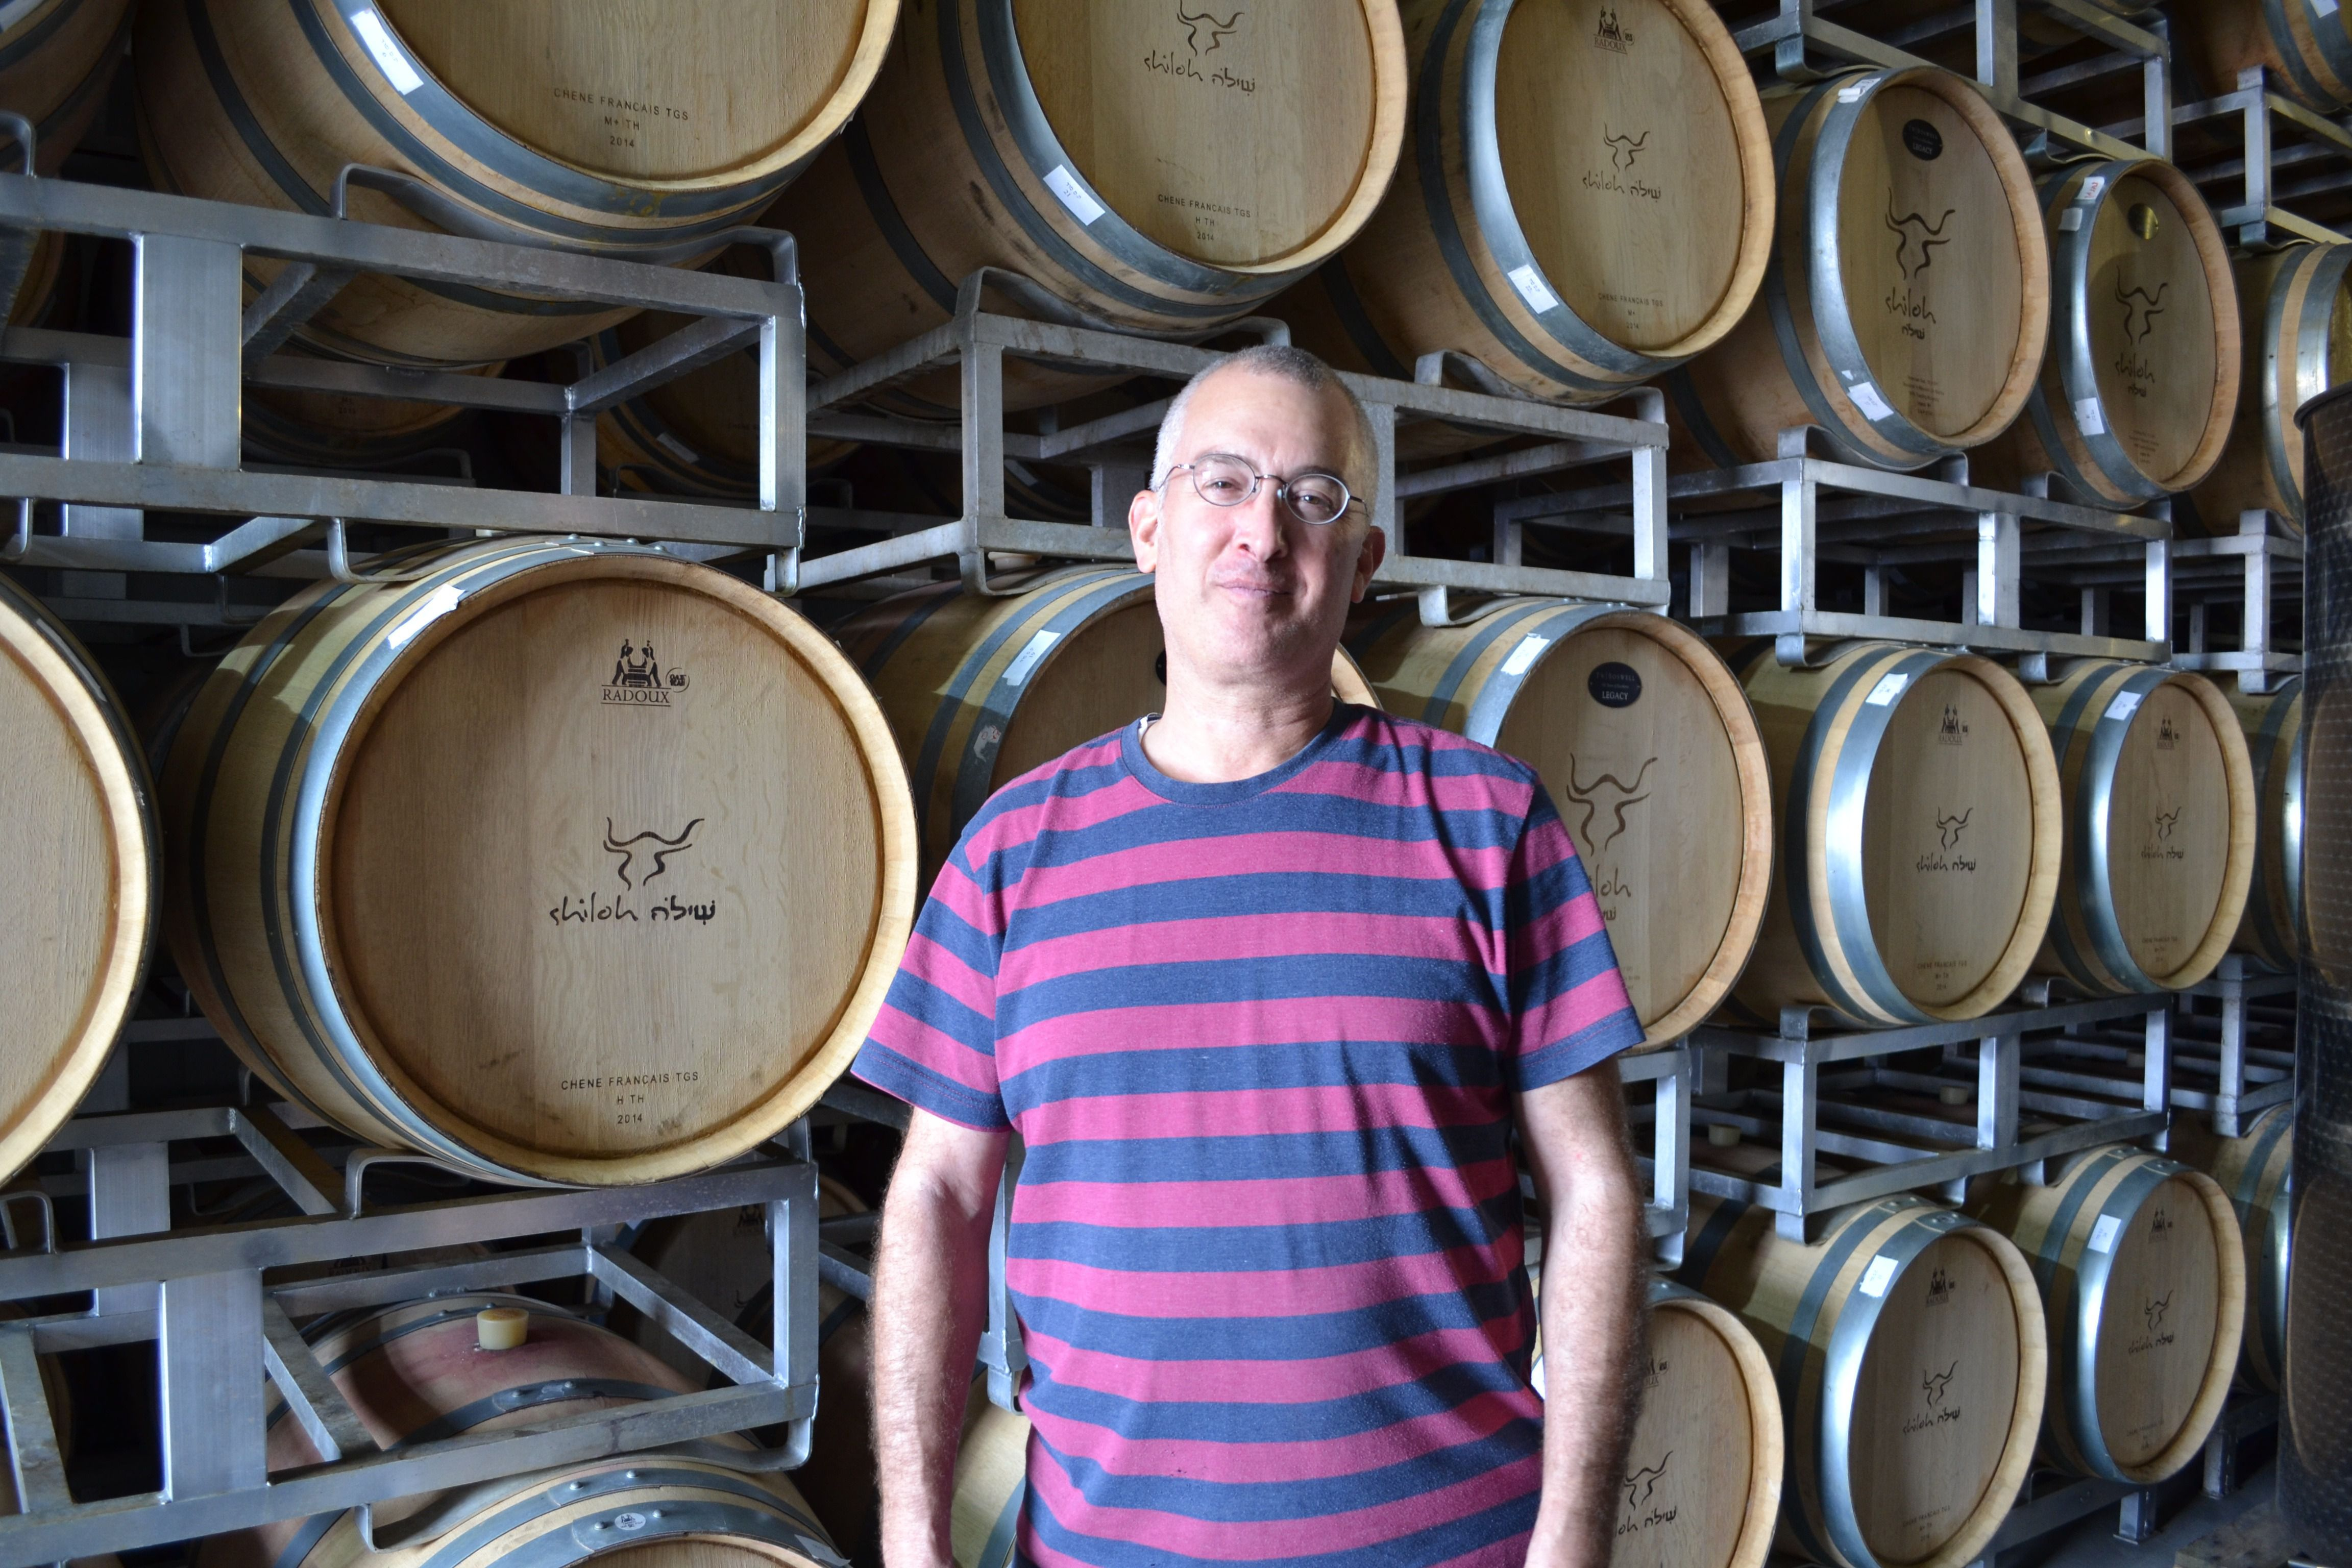 Heard It Through the Grapevine: Amichai Lourie wants the world to know the grapes for his wine come from Shiloh, explaining, 'We are here because we believe we are supposed to be here.'